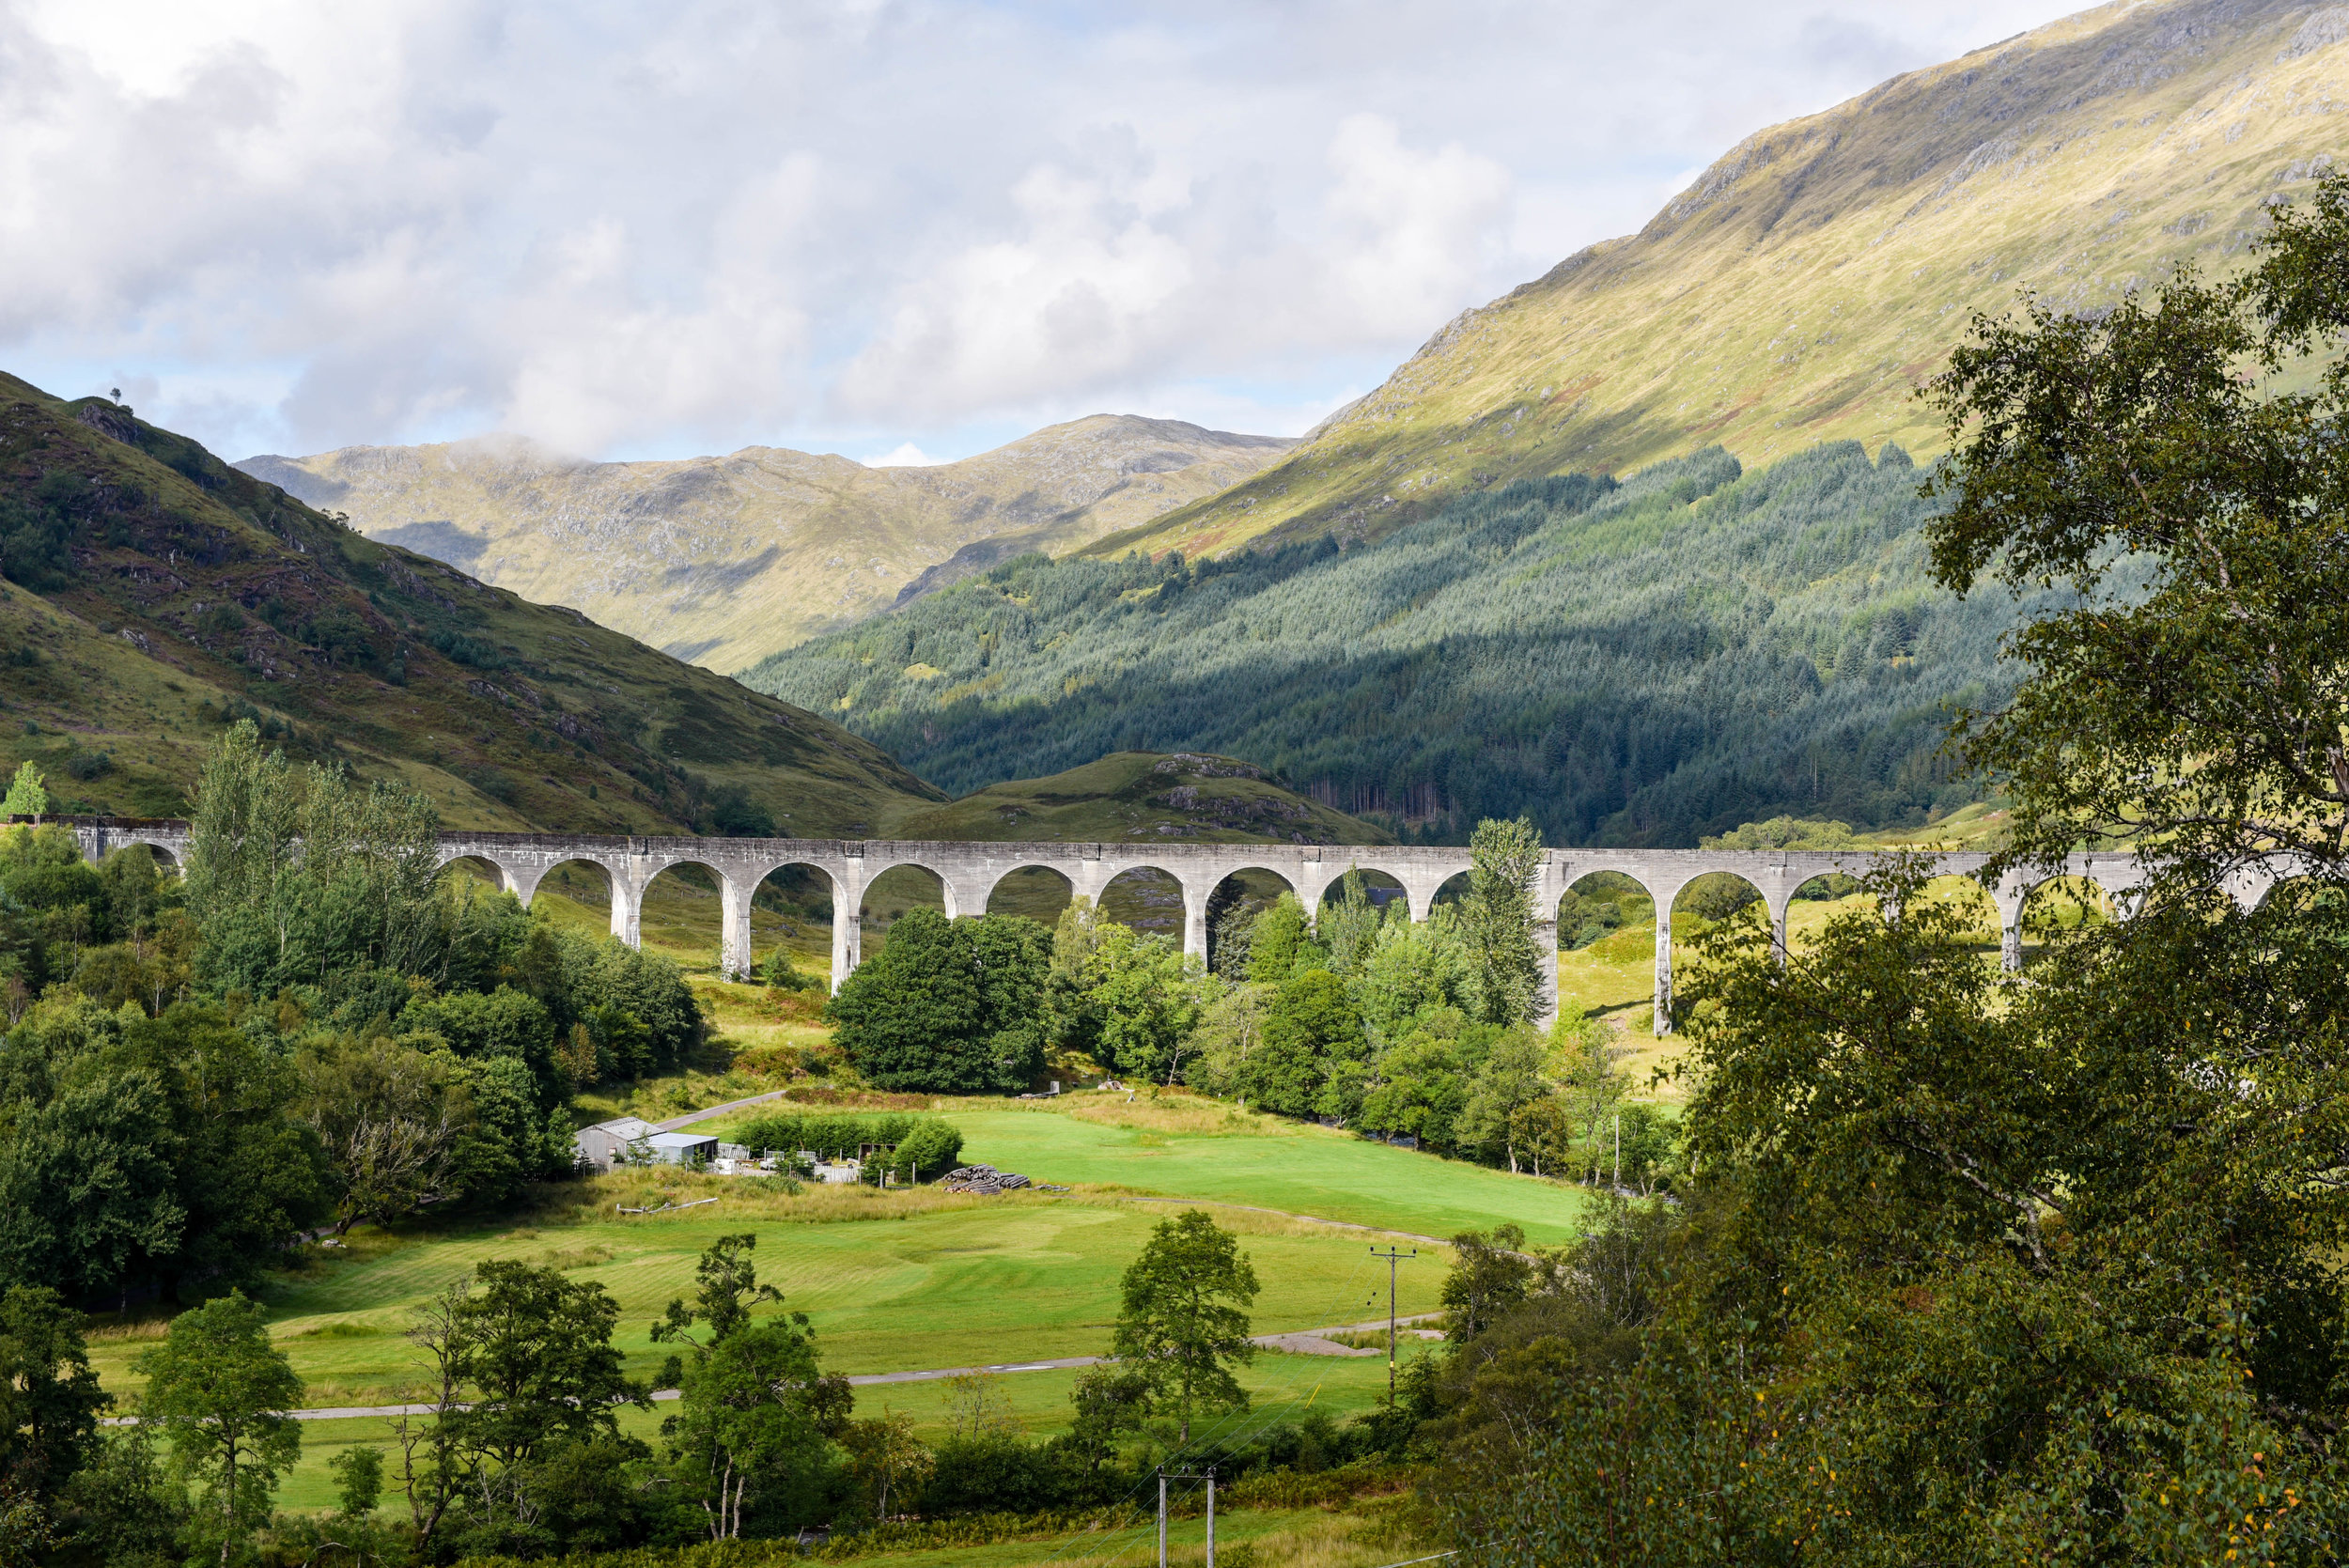 Glenfinnan Viaduct (used in Harry Potter for Hogwart's Express)